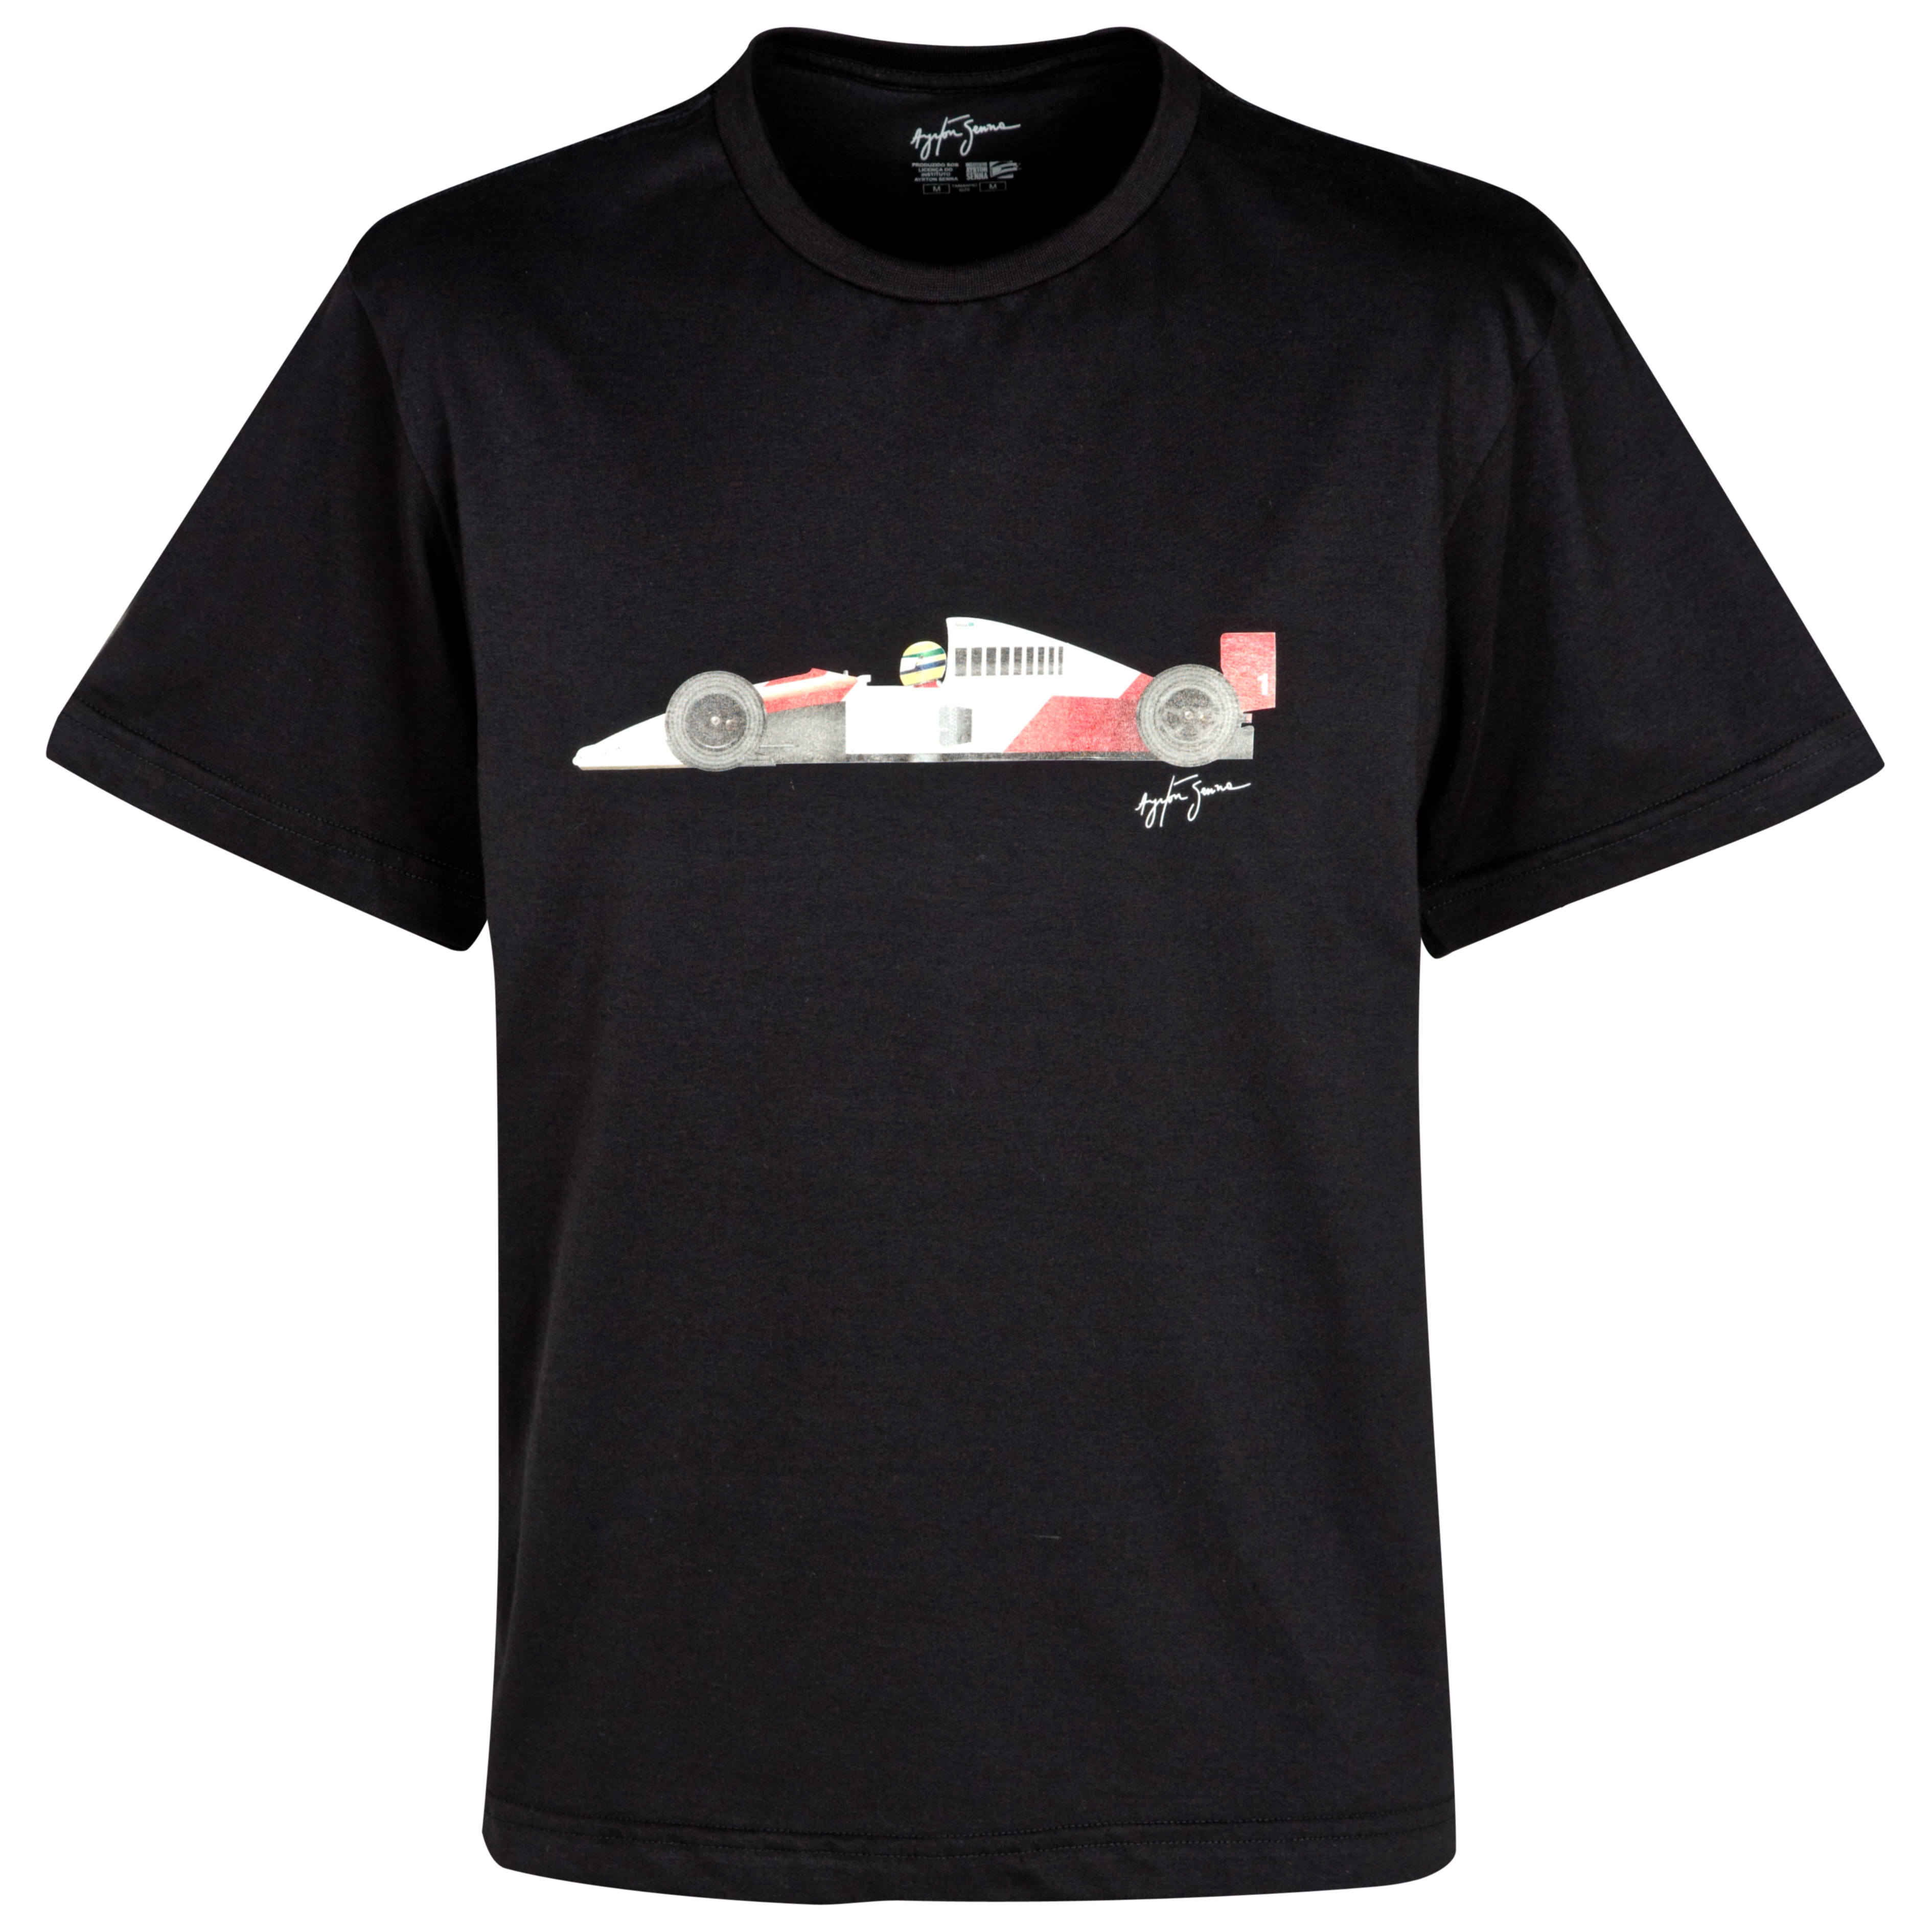 Ayrton Senna McLaren T-Shirt - Black